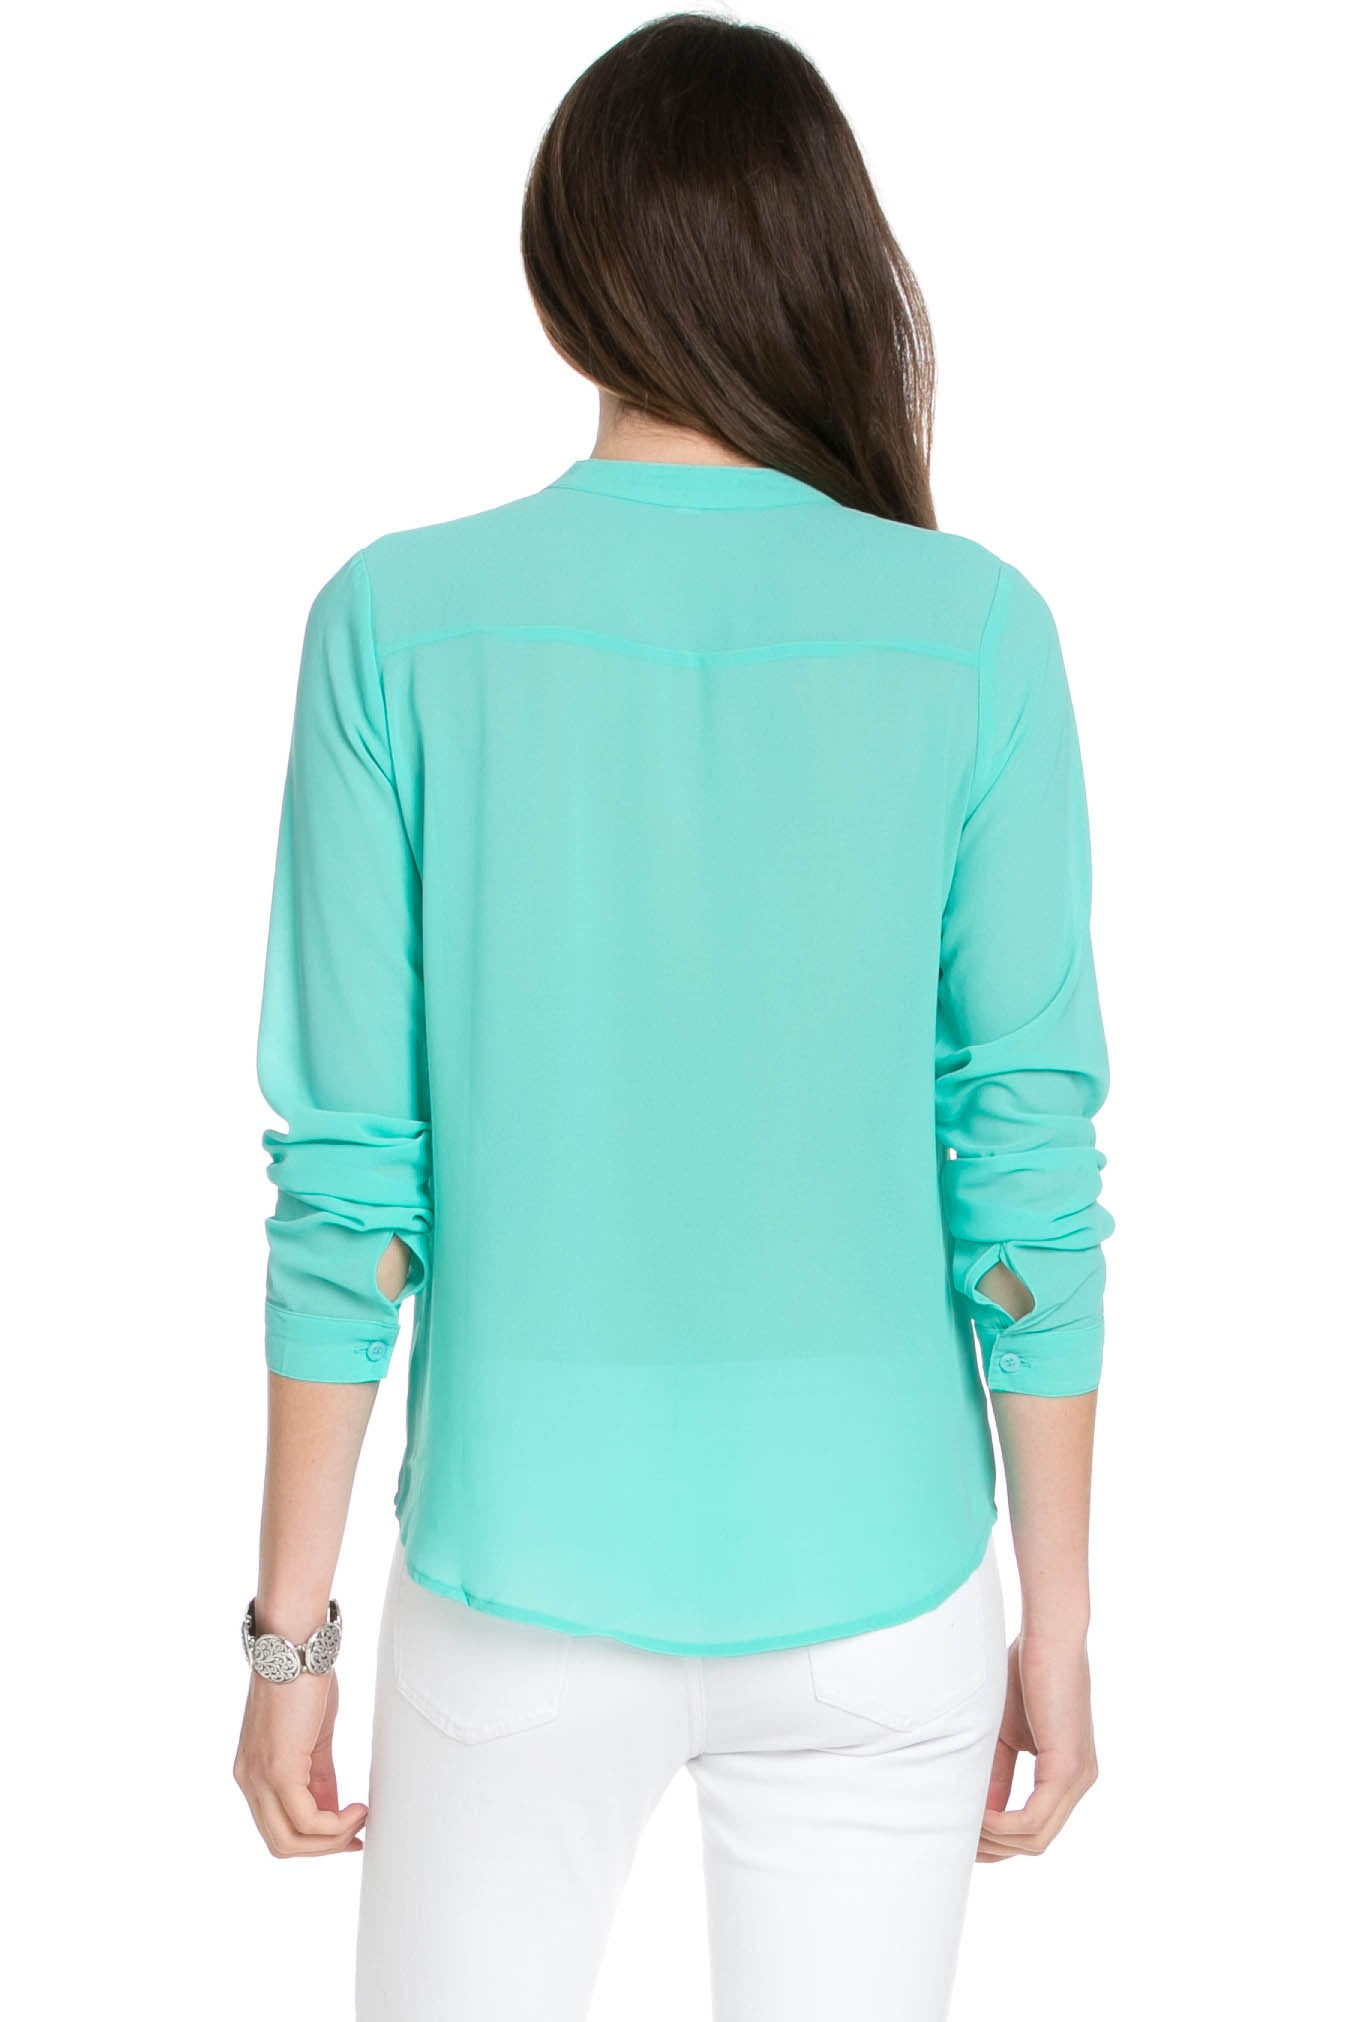 V-Neck Chiffon Blouse Mint - Tops - My Yuccie - 3